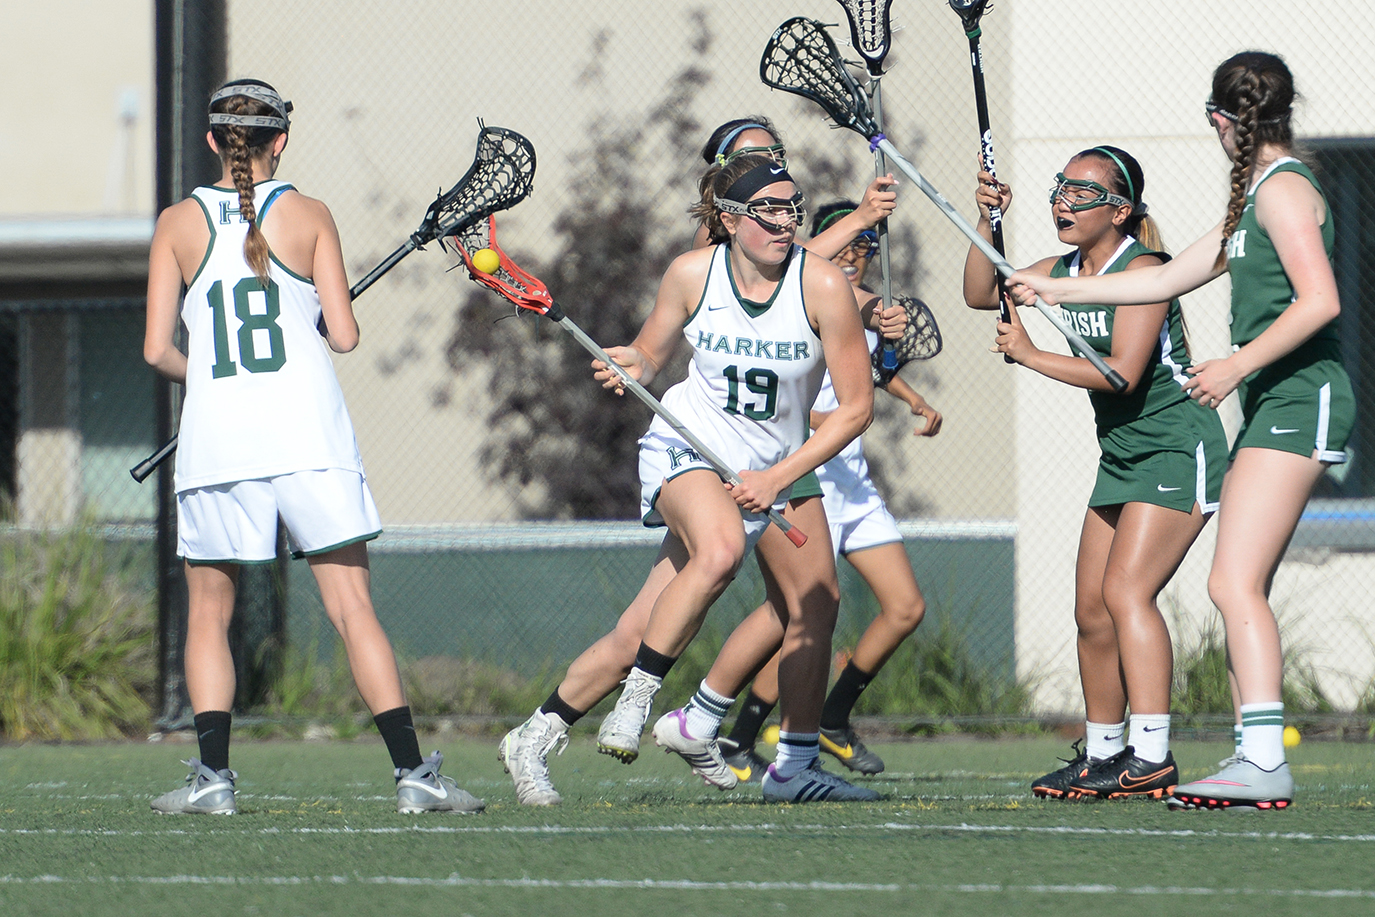 Richmond '17 named US Lacrosse Girls HS All-Academic for 2017